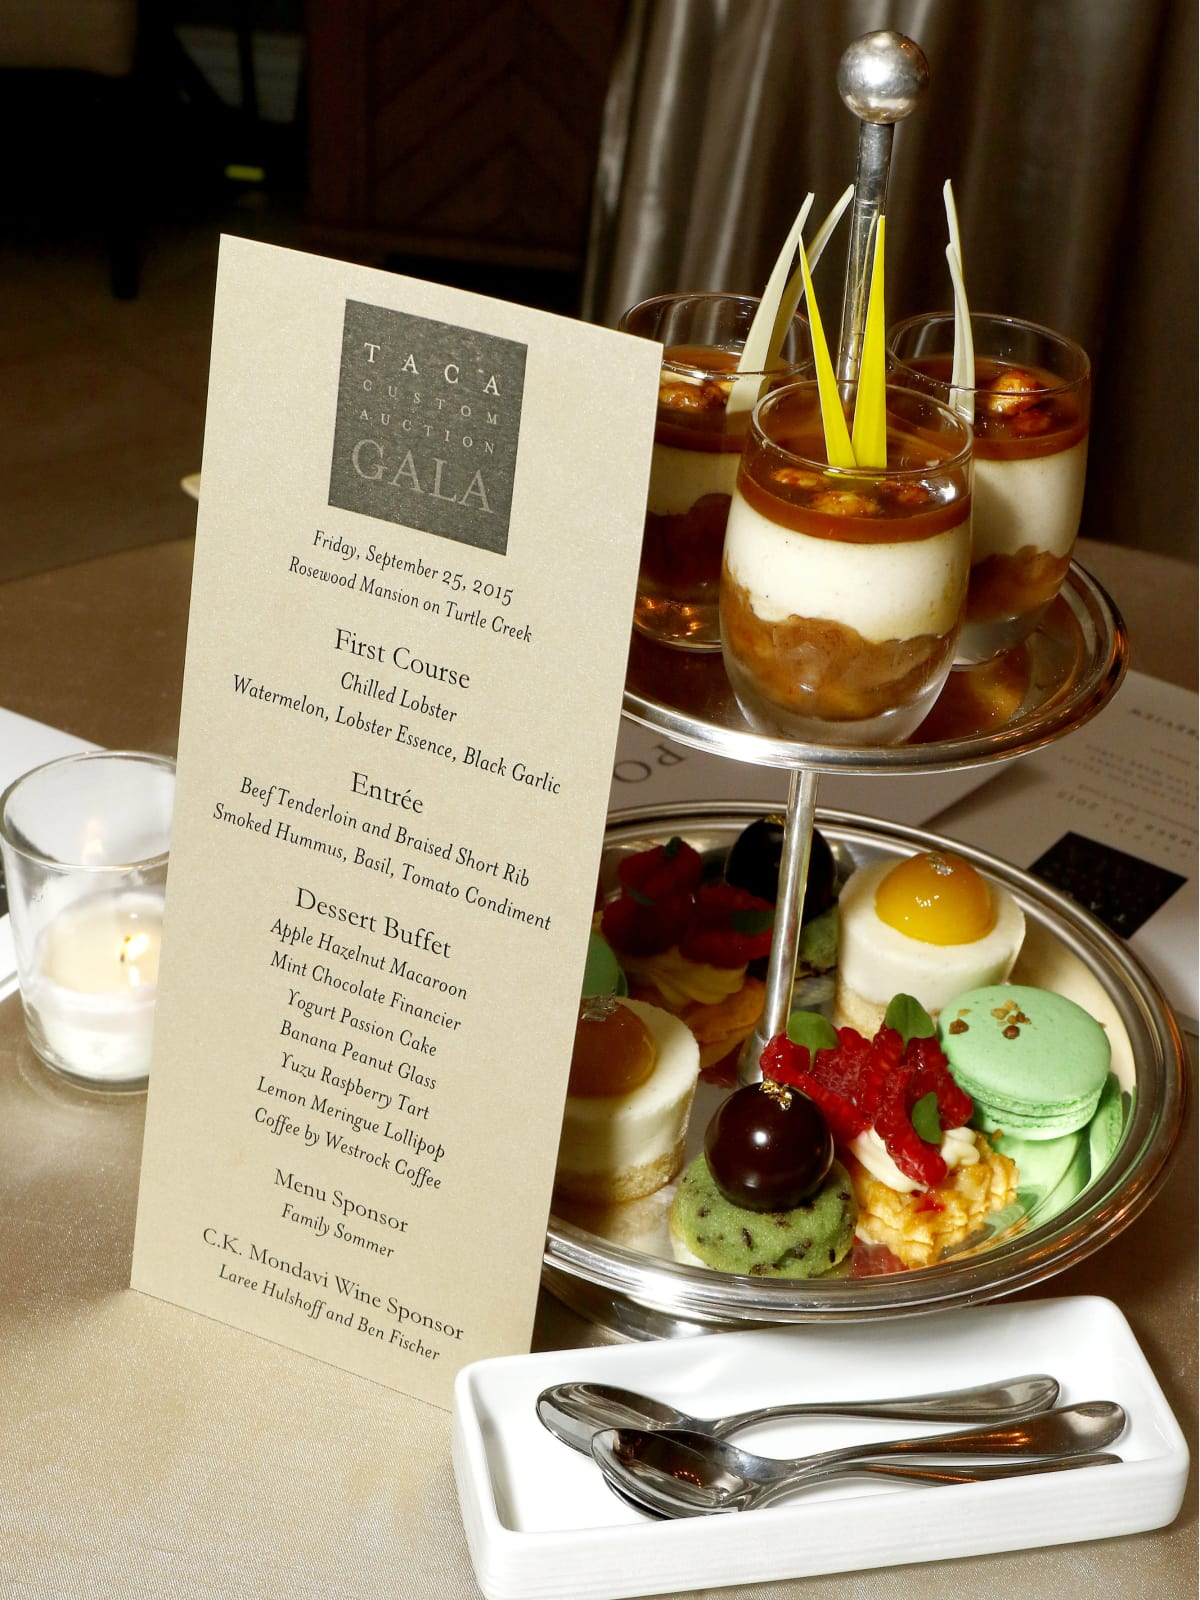 Menu and Assorted Desserts